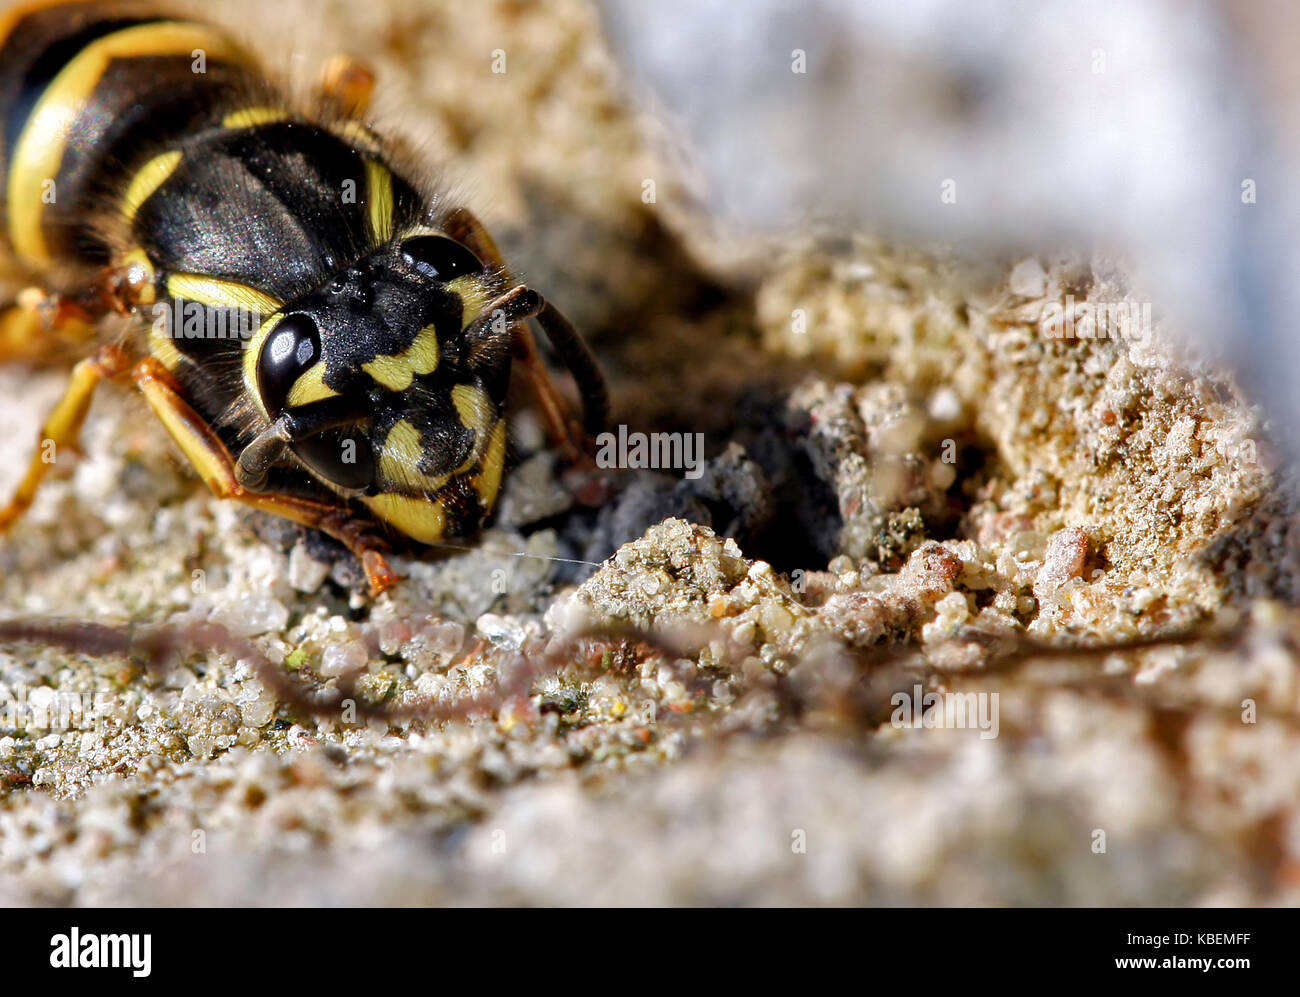 Close-up of a bee - Stock Image